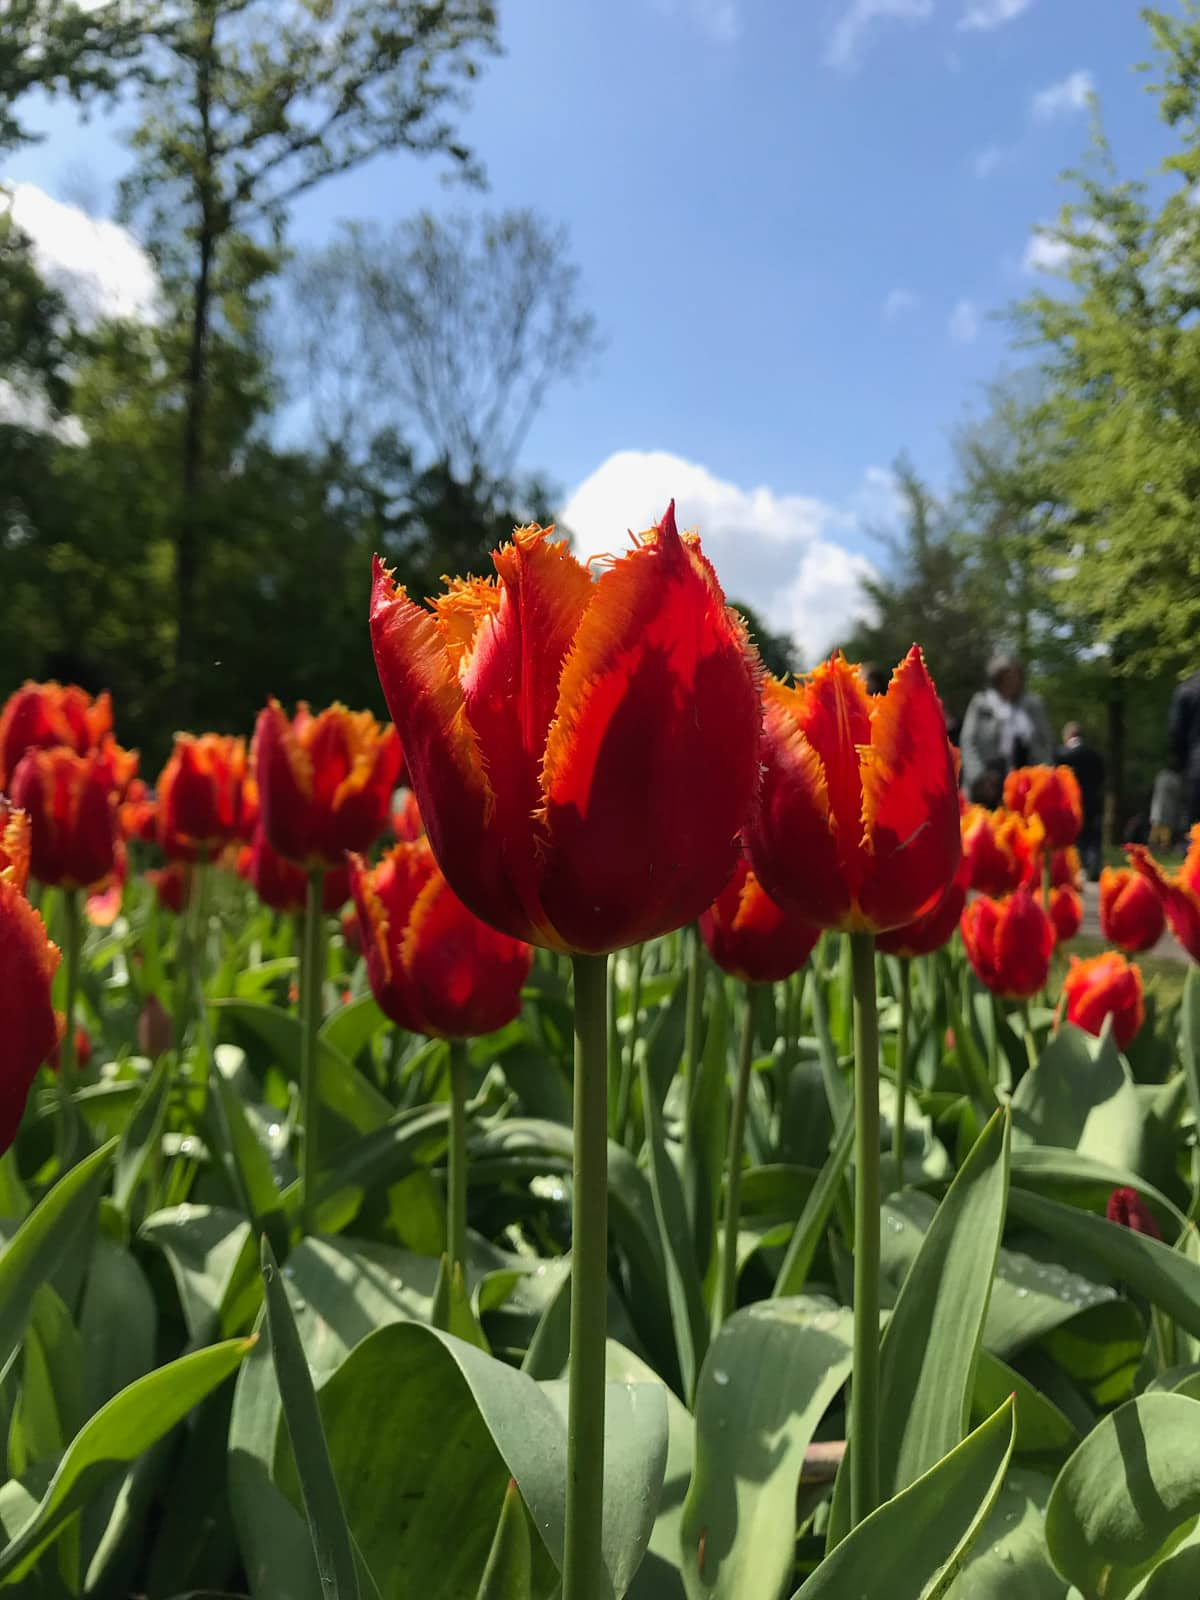 Orange-red coloured tulips at eye level, with their stems visible. The sky in the background is blue and relatively clear.